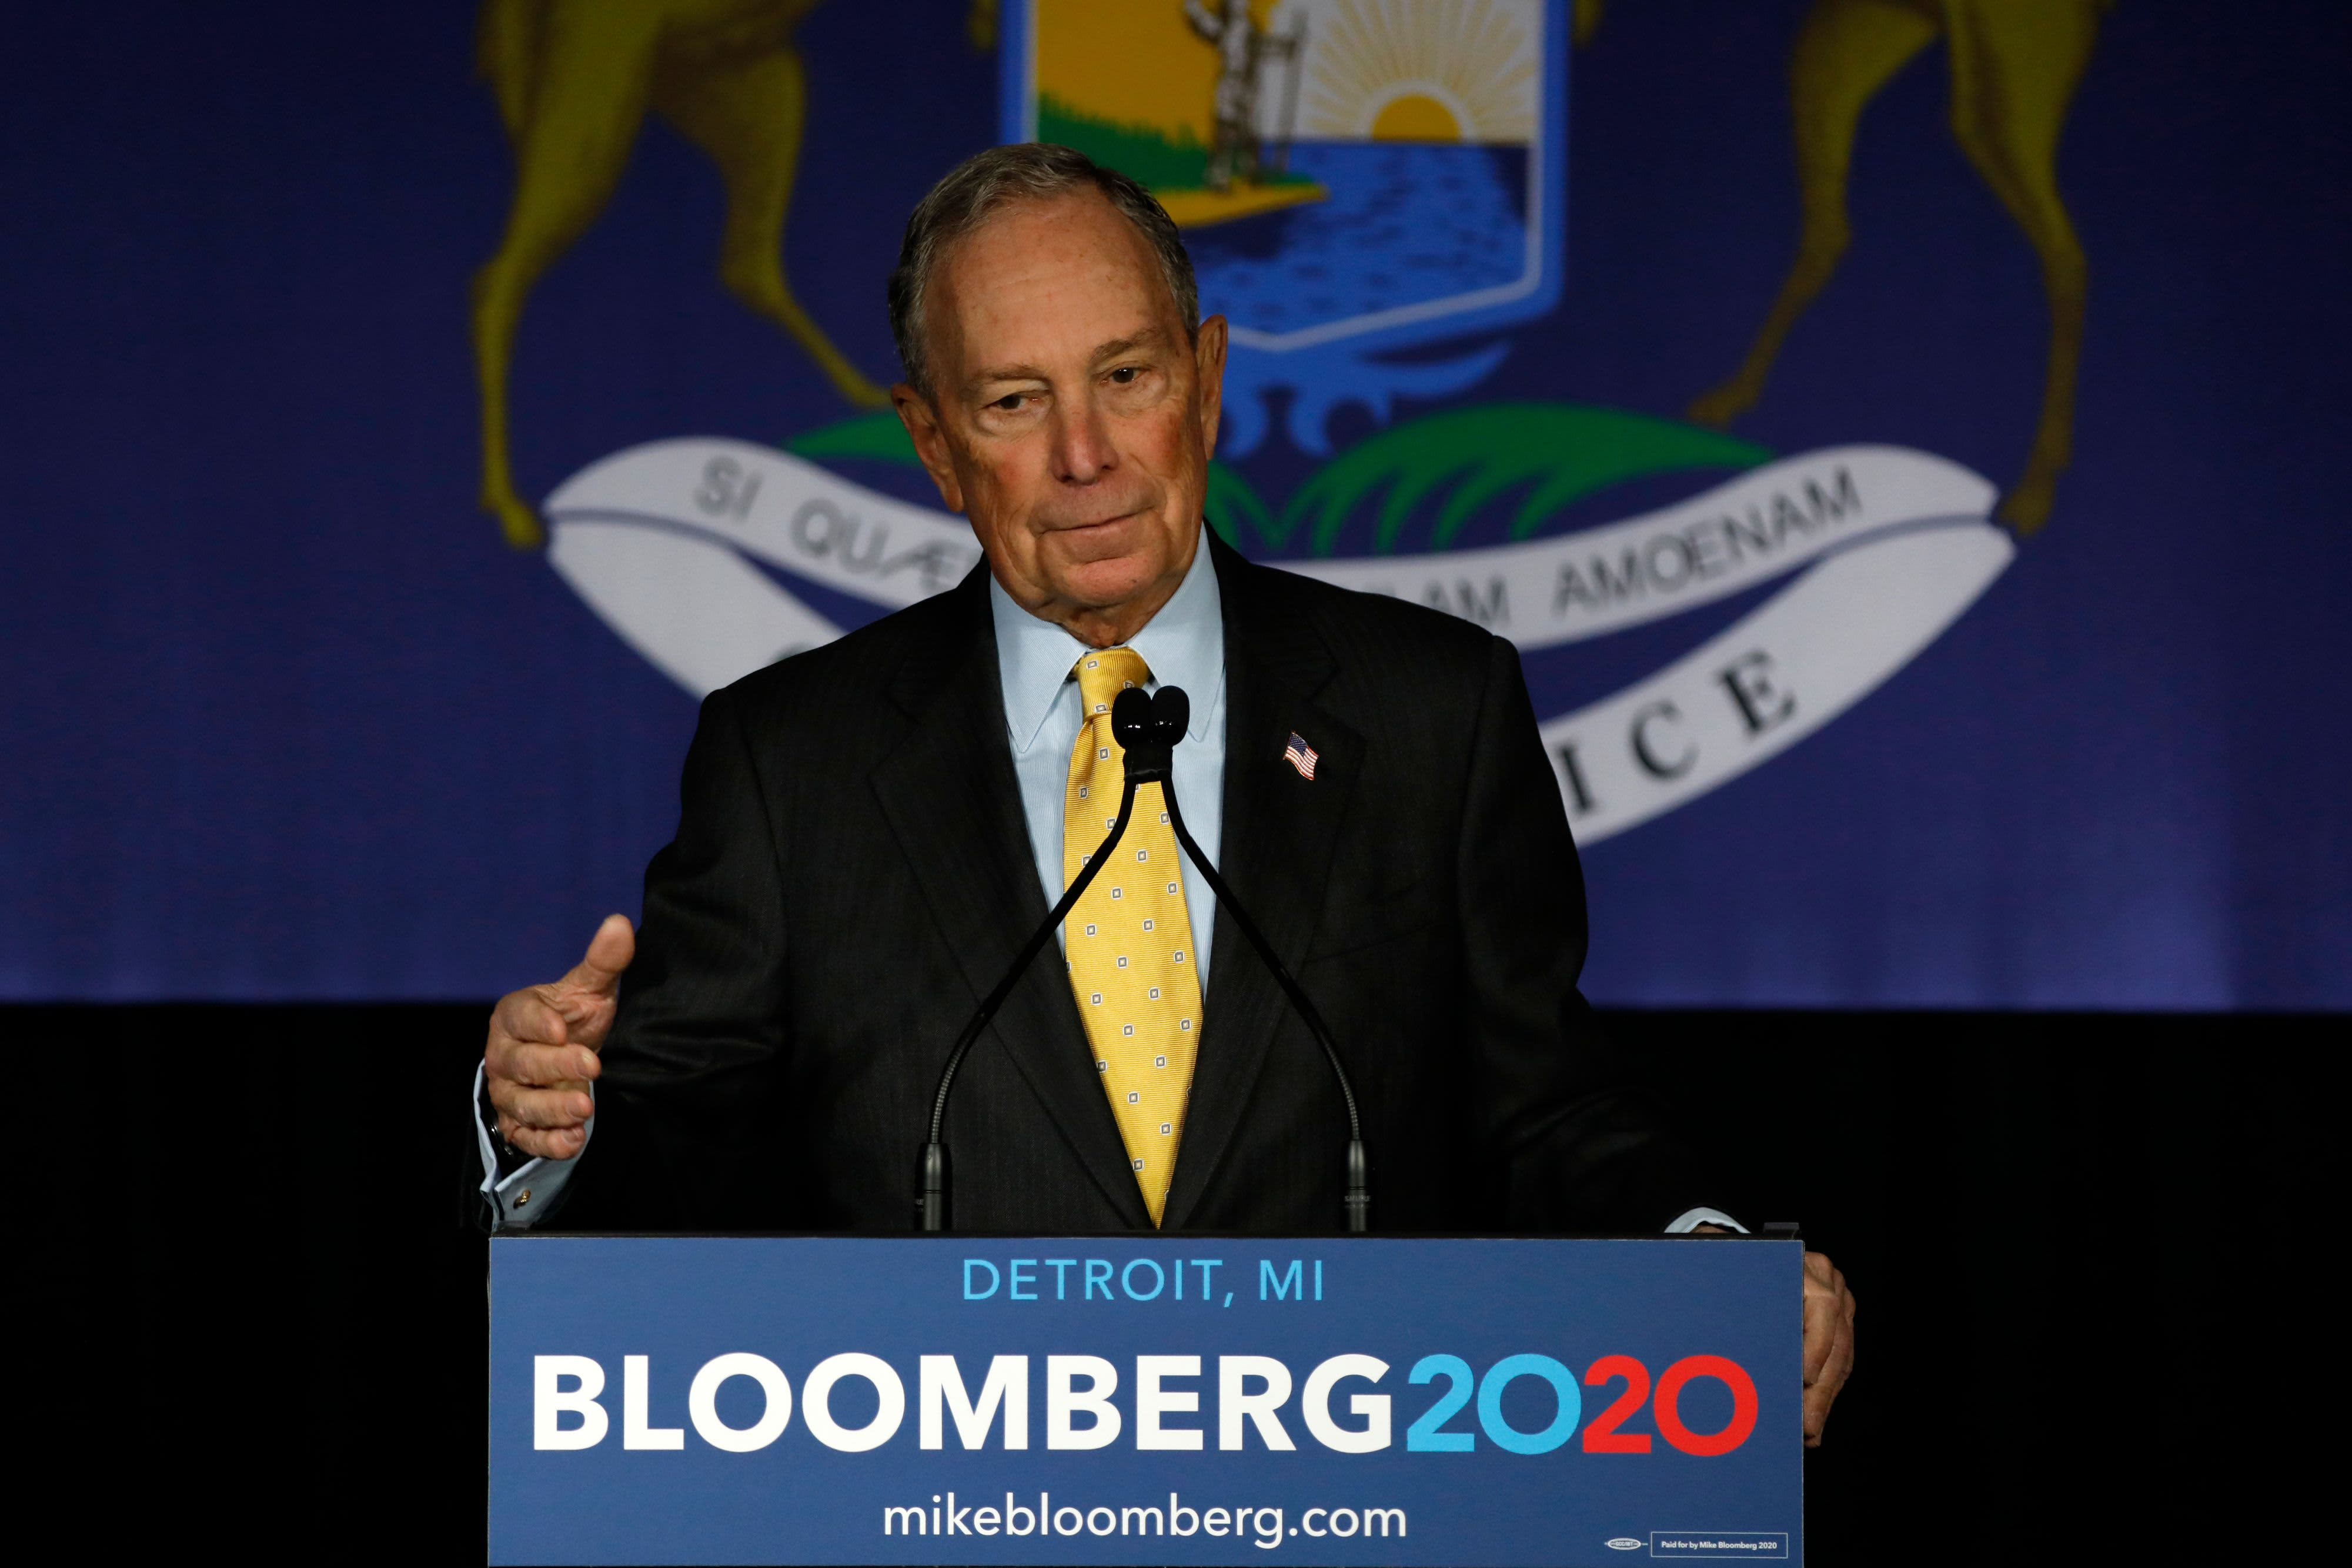 Democratic debate: 2020 candidates attack Michael Bloomberg's huge campaign spending